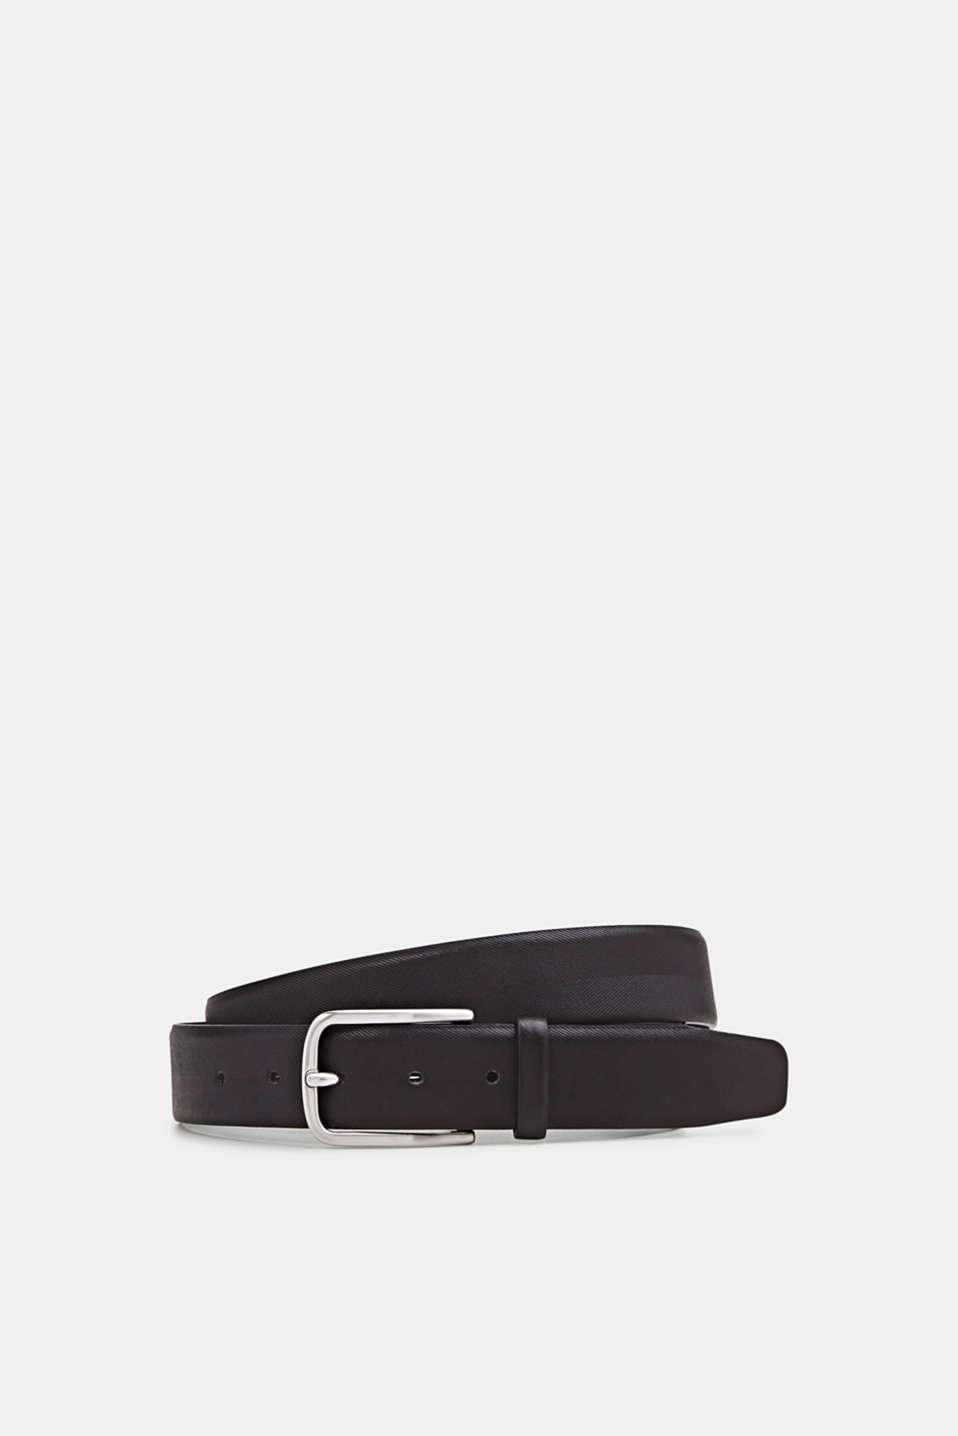 Esprit - Belt with a herringbone texture, made of leather